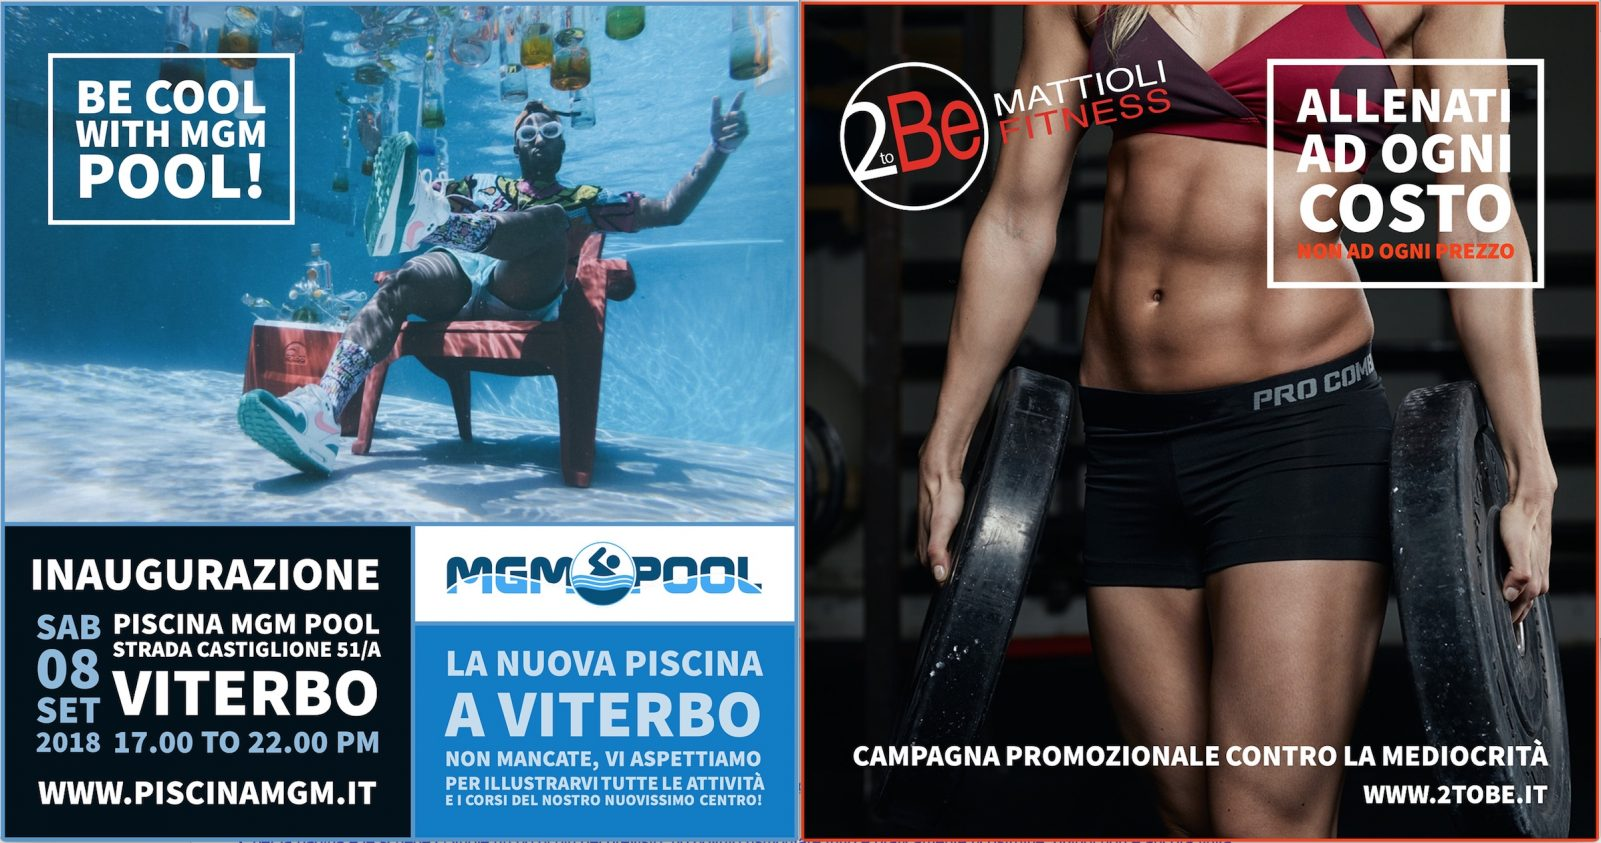 Nuova piscina a Viterbo - MGM Pool